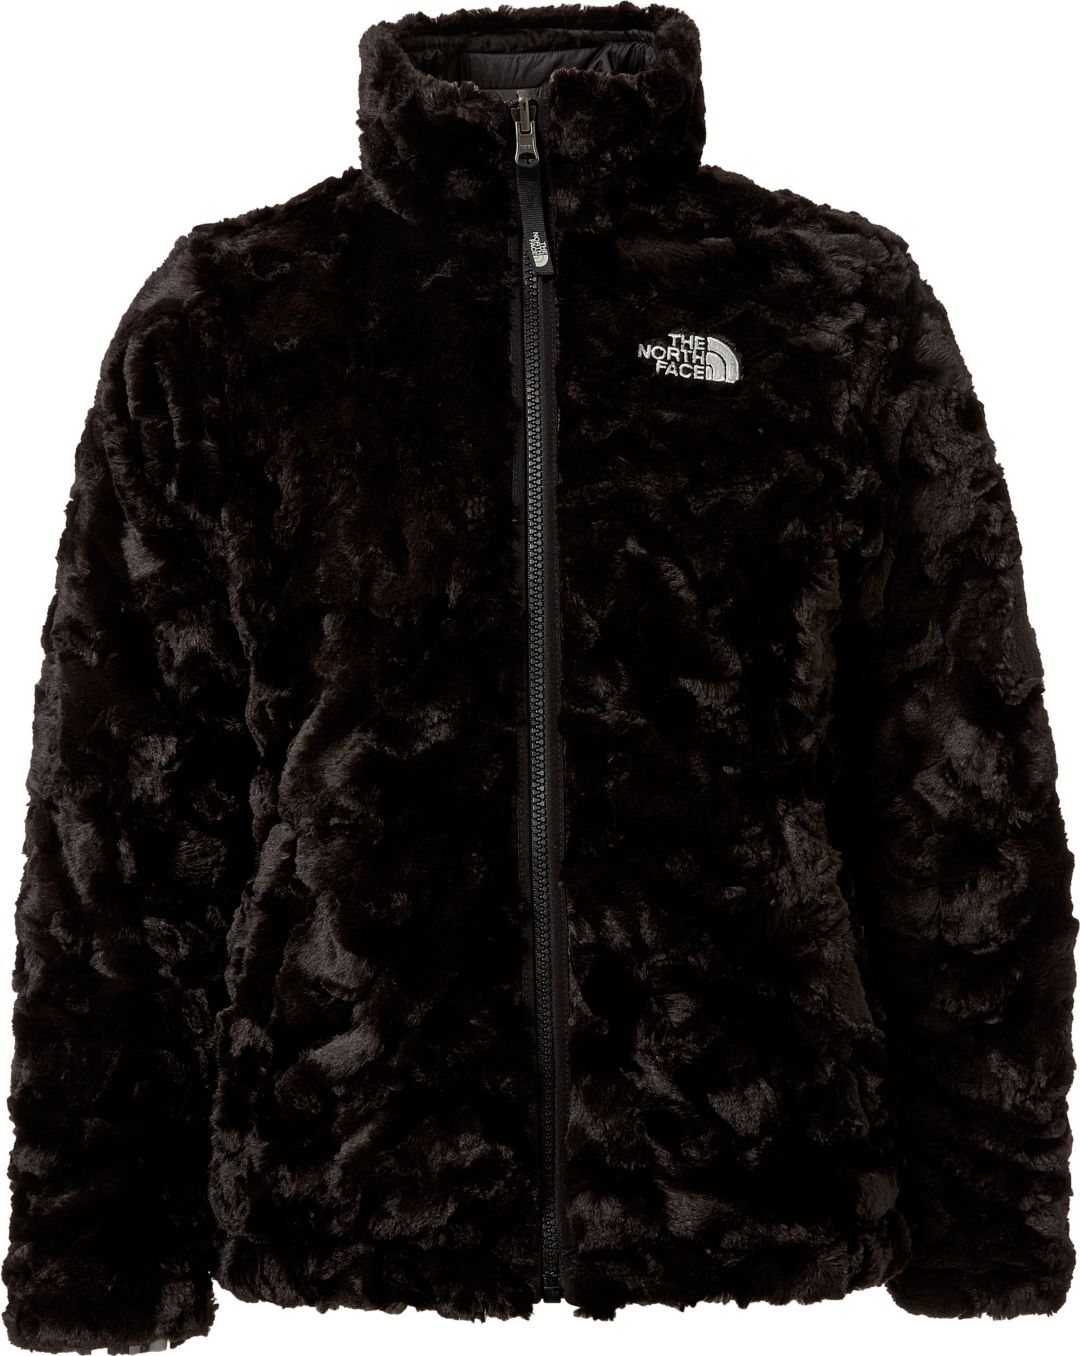 f4393edc1f29 The North Face Girls' Reversible Mossbud Swirl Insulated Jacket